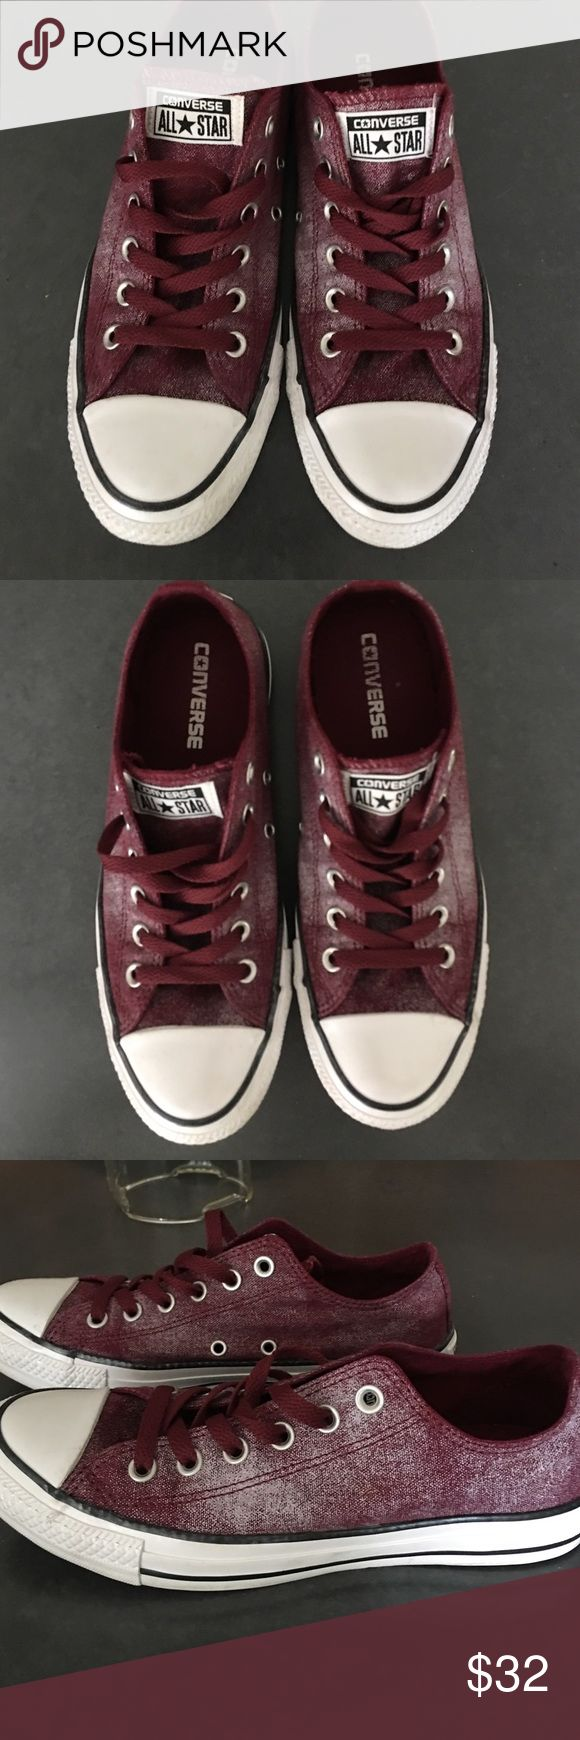 Converse All Star Burgundy White Washed Sneakers Converse All Star Burgundy White Washed Sneakers. Worn Once!  Mint Condition! Women's size 8. Great Burgundy color with subtle white wash. Great deal Converse Shoes Sneakers